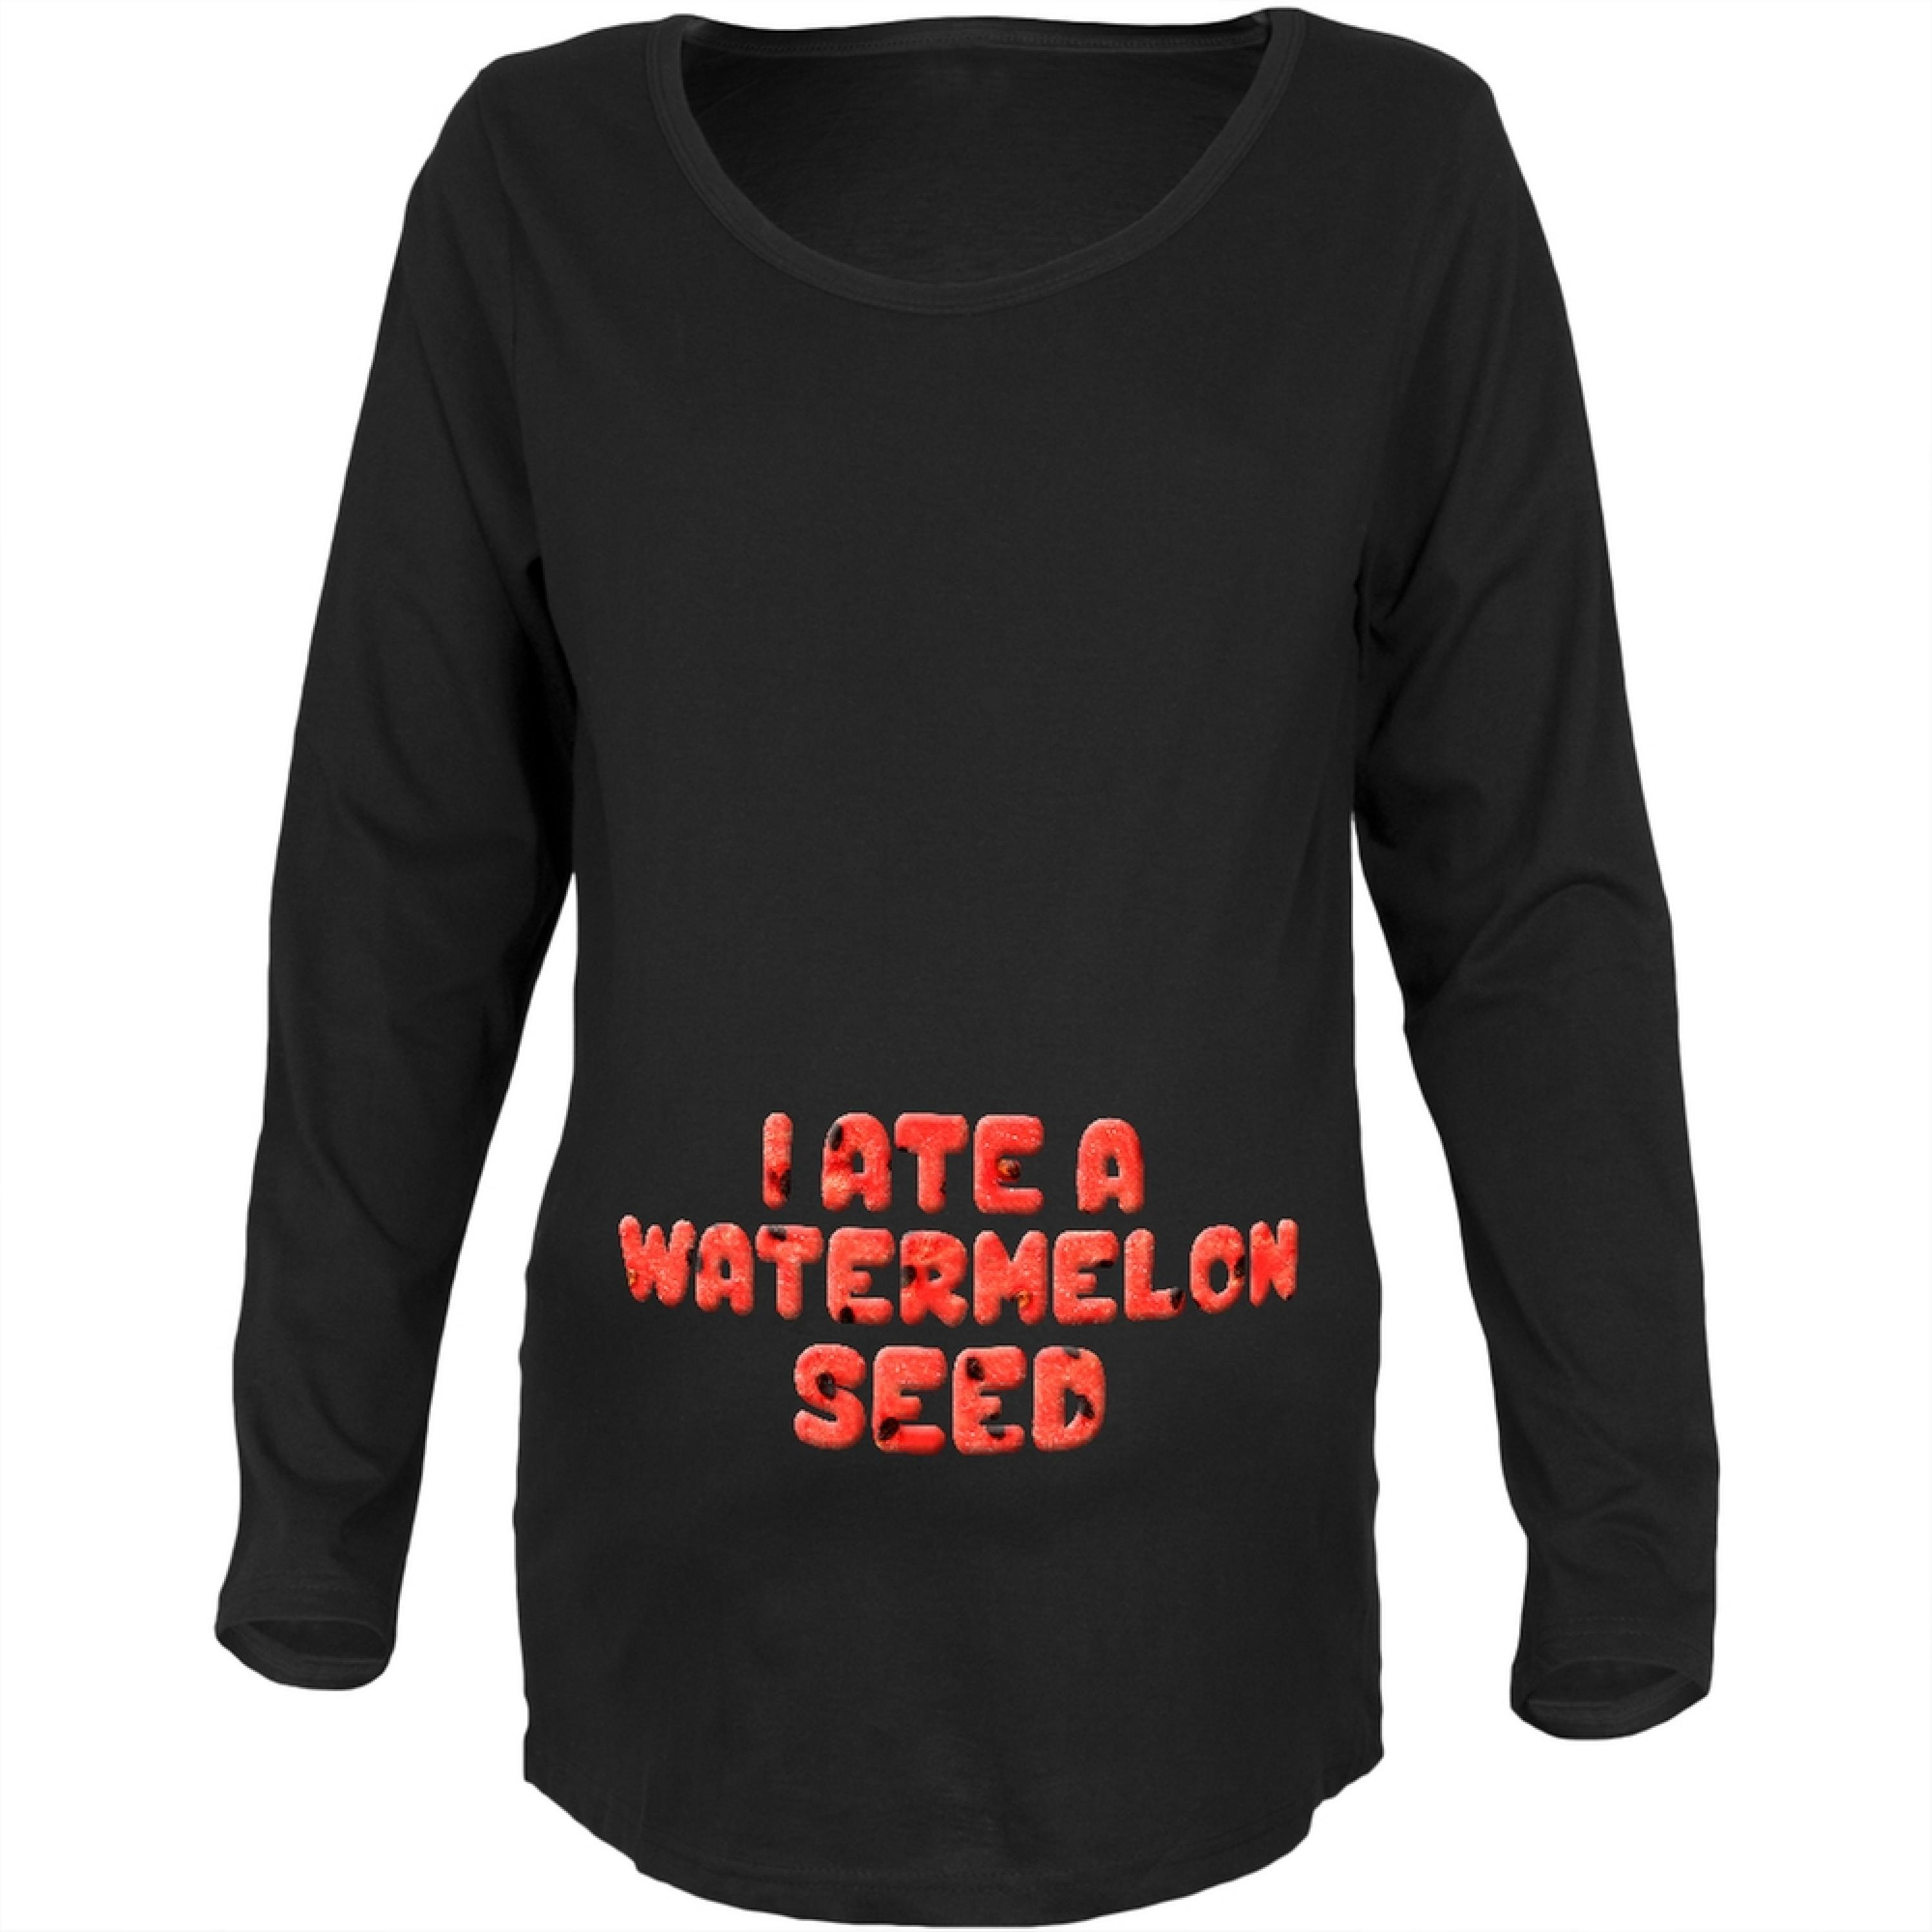 Watermelon Seed Black Maternity Soft Long Sleeve T-Shirt